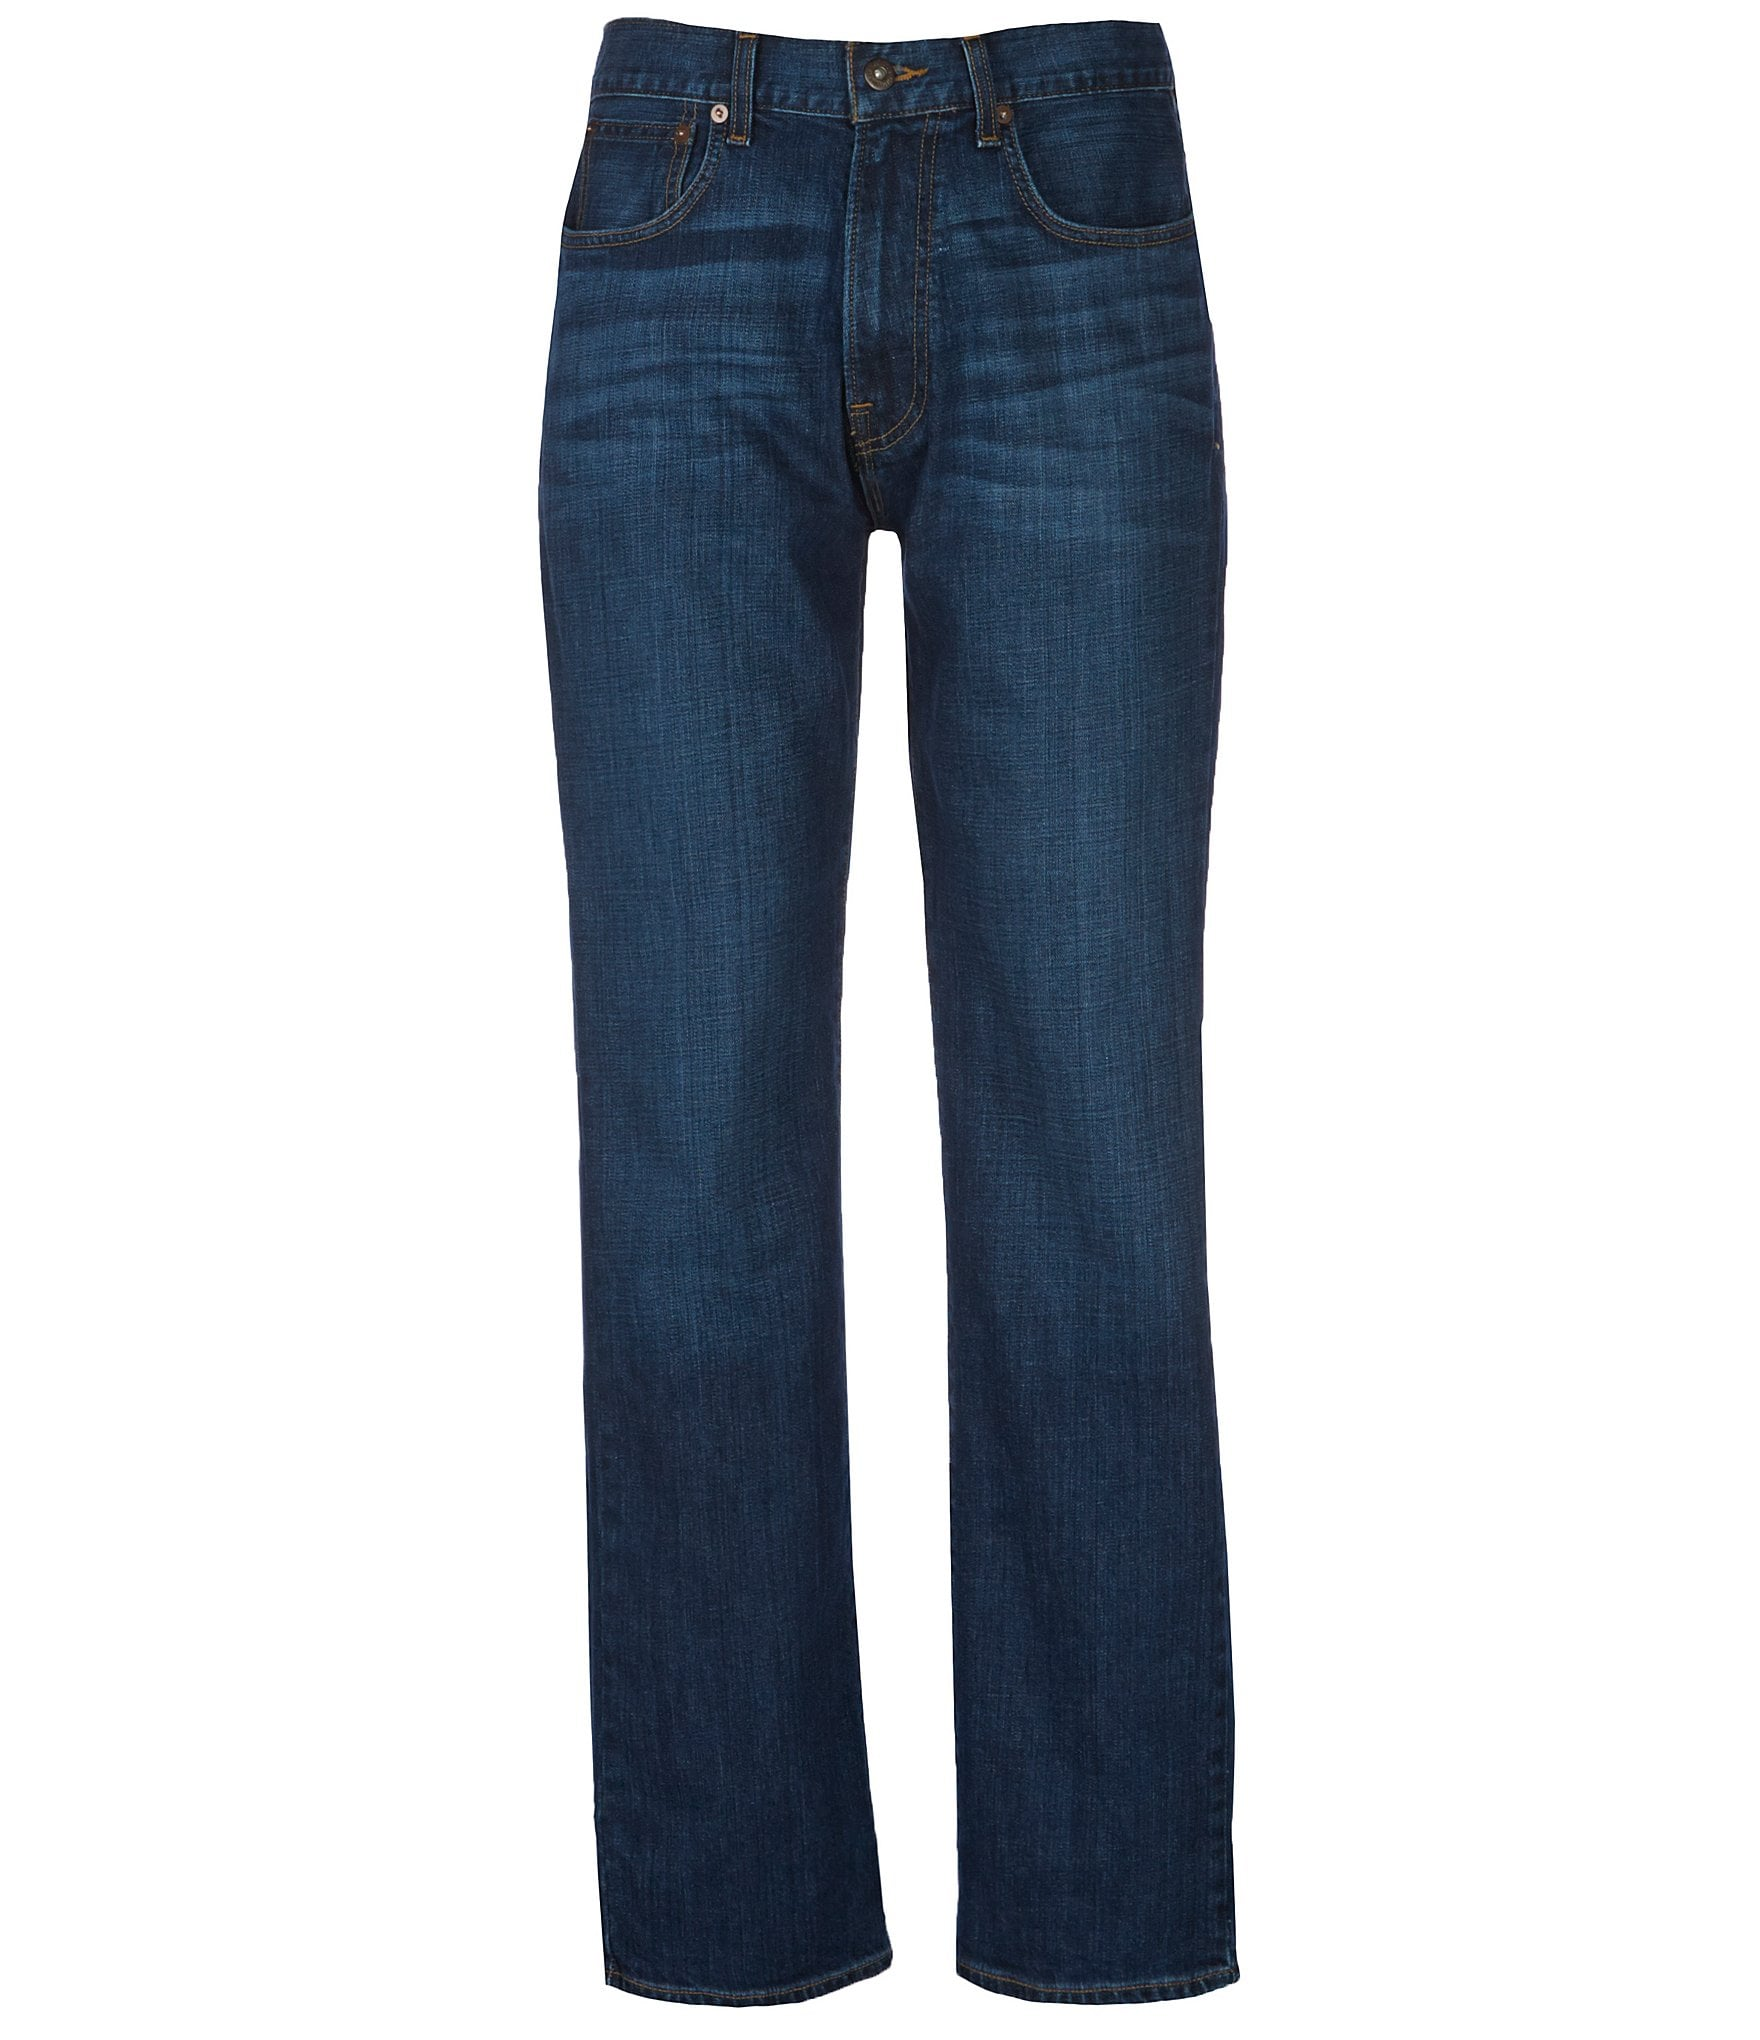 promo code 88ea9 fff3a Cremieux Jeans Straight-Fit Stretch Jeans